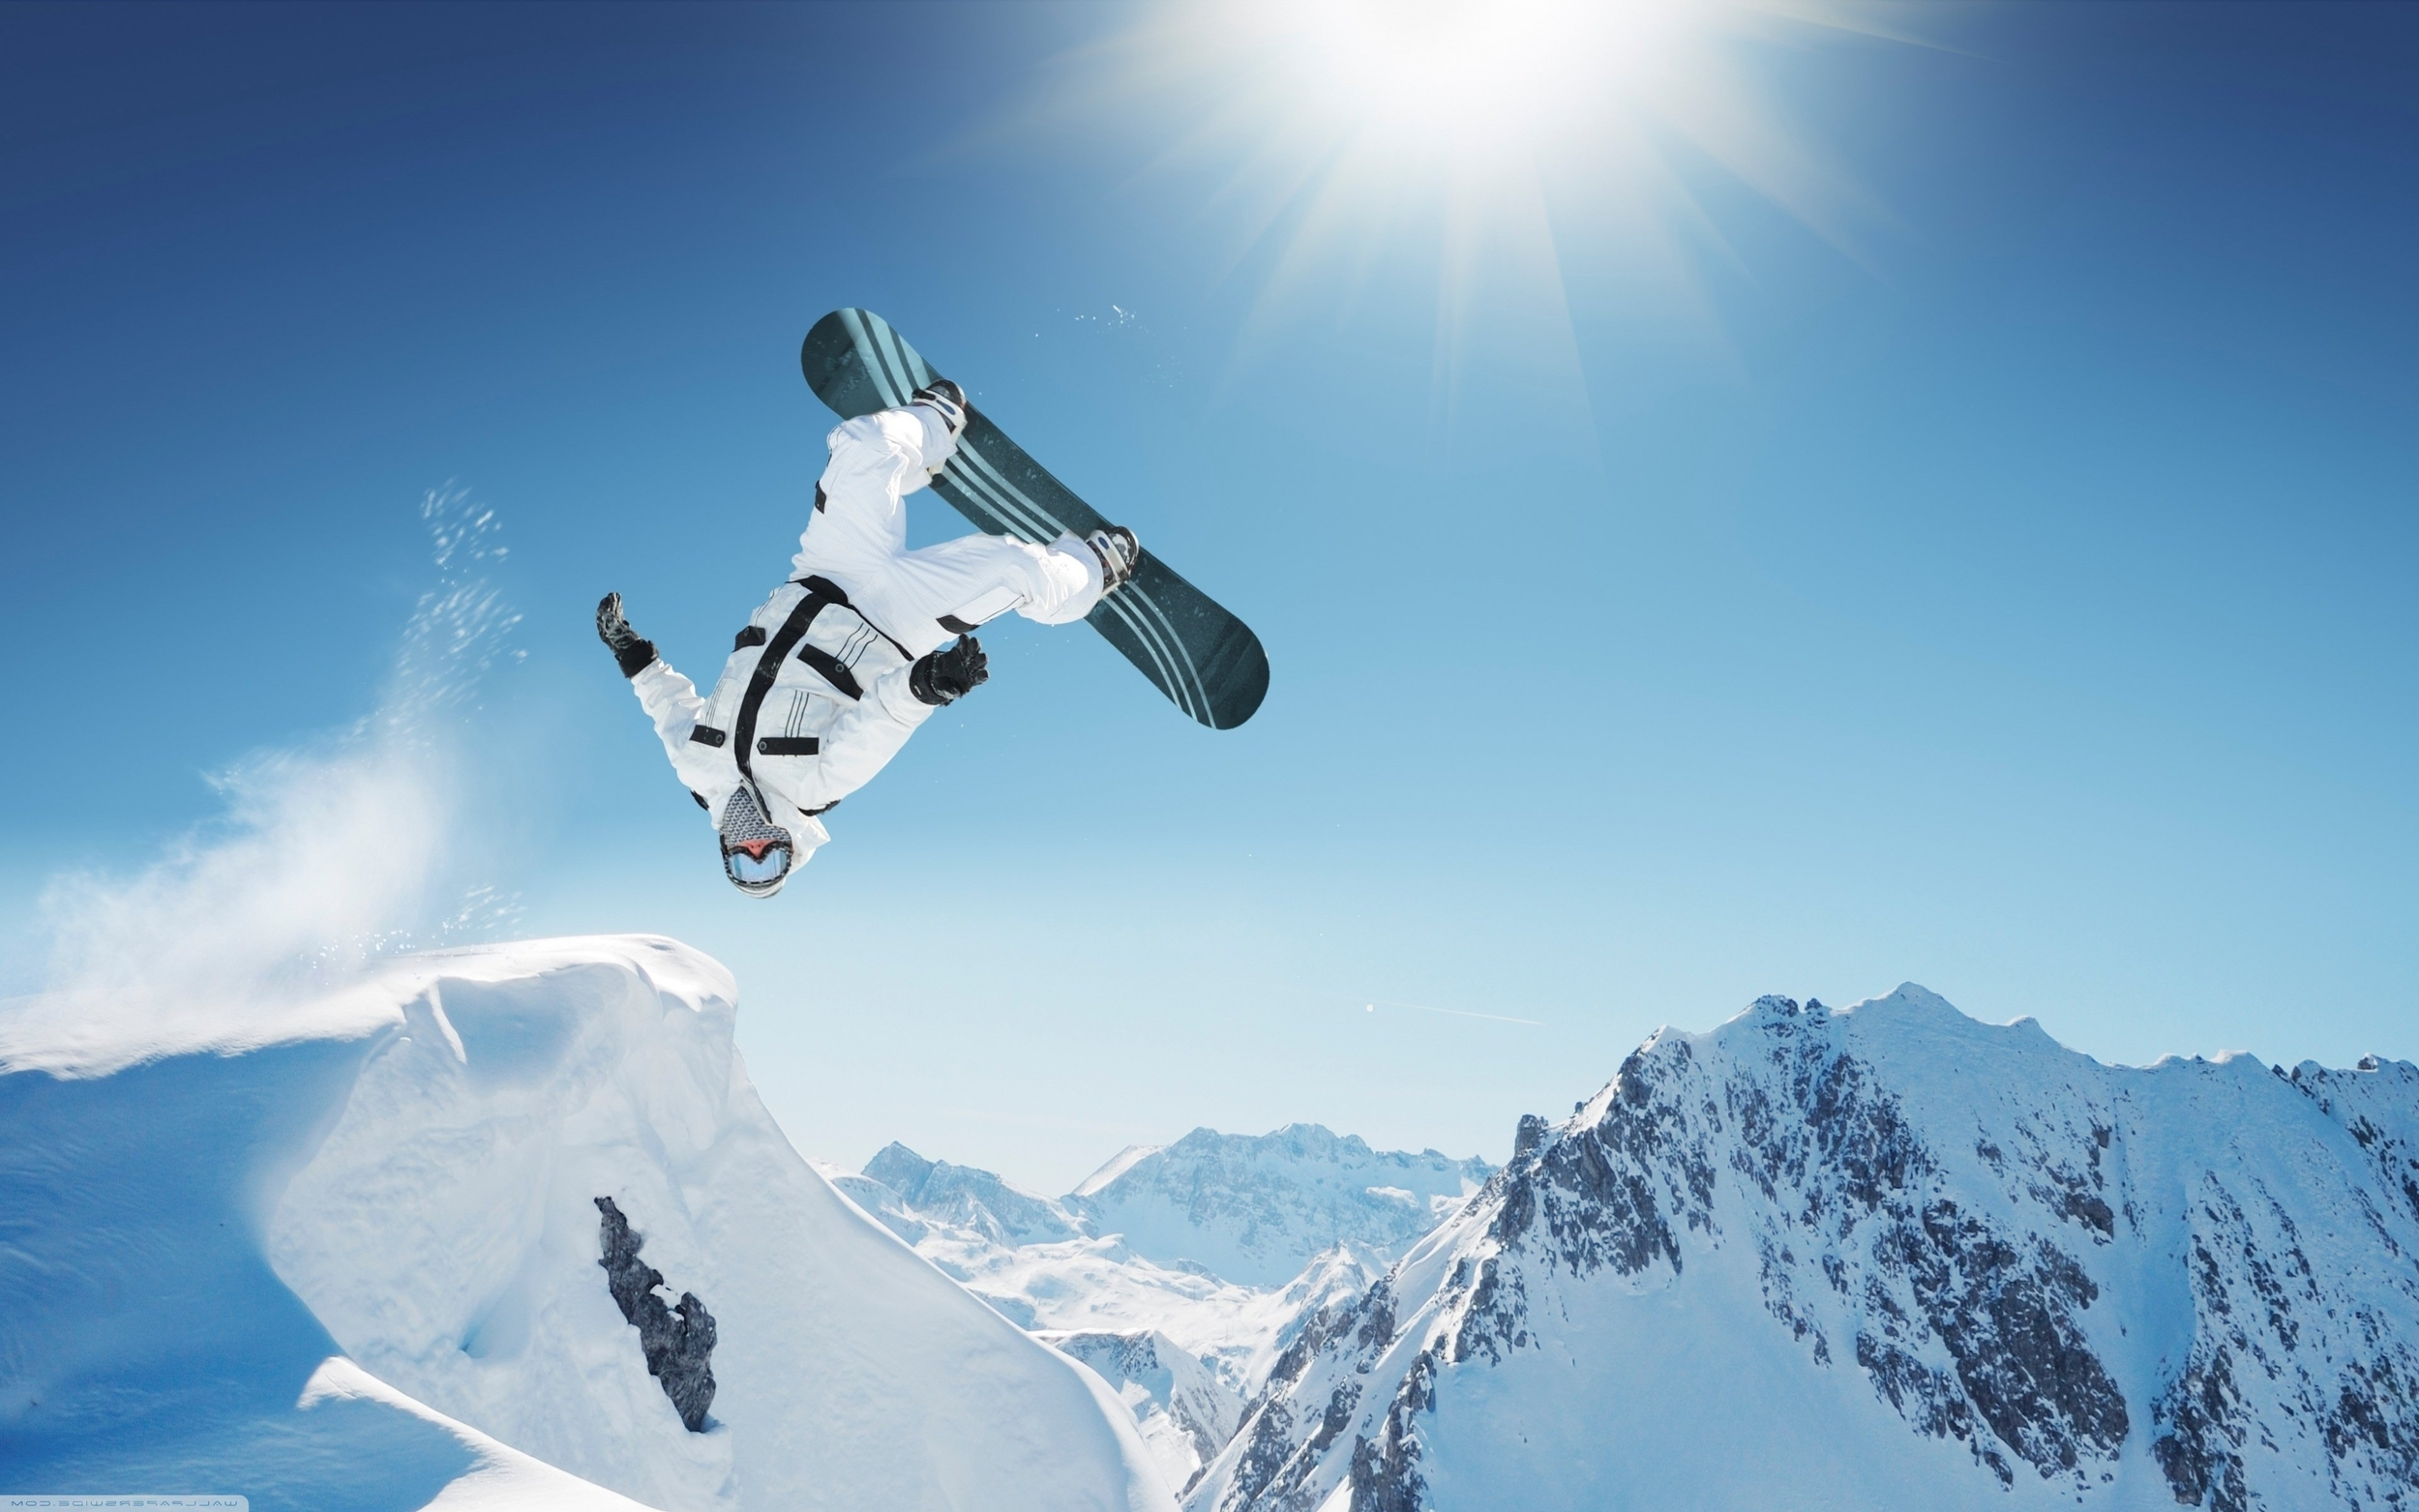 EXTREME / ACTION SPORTS